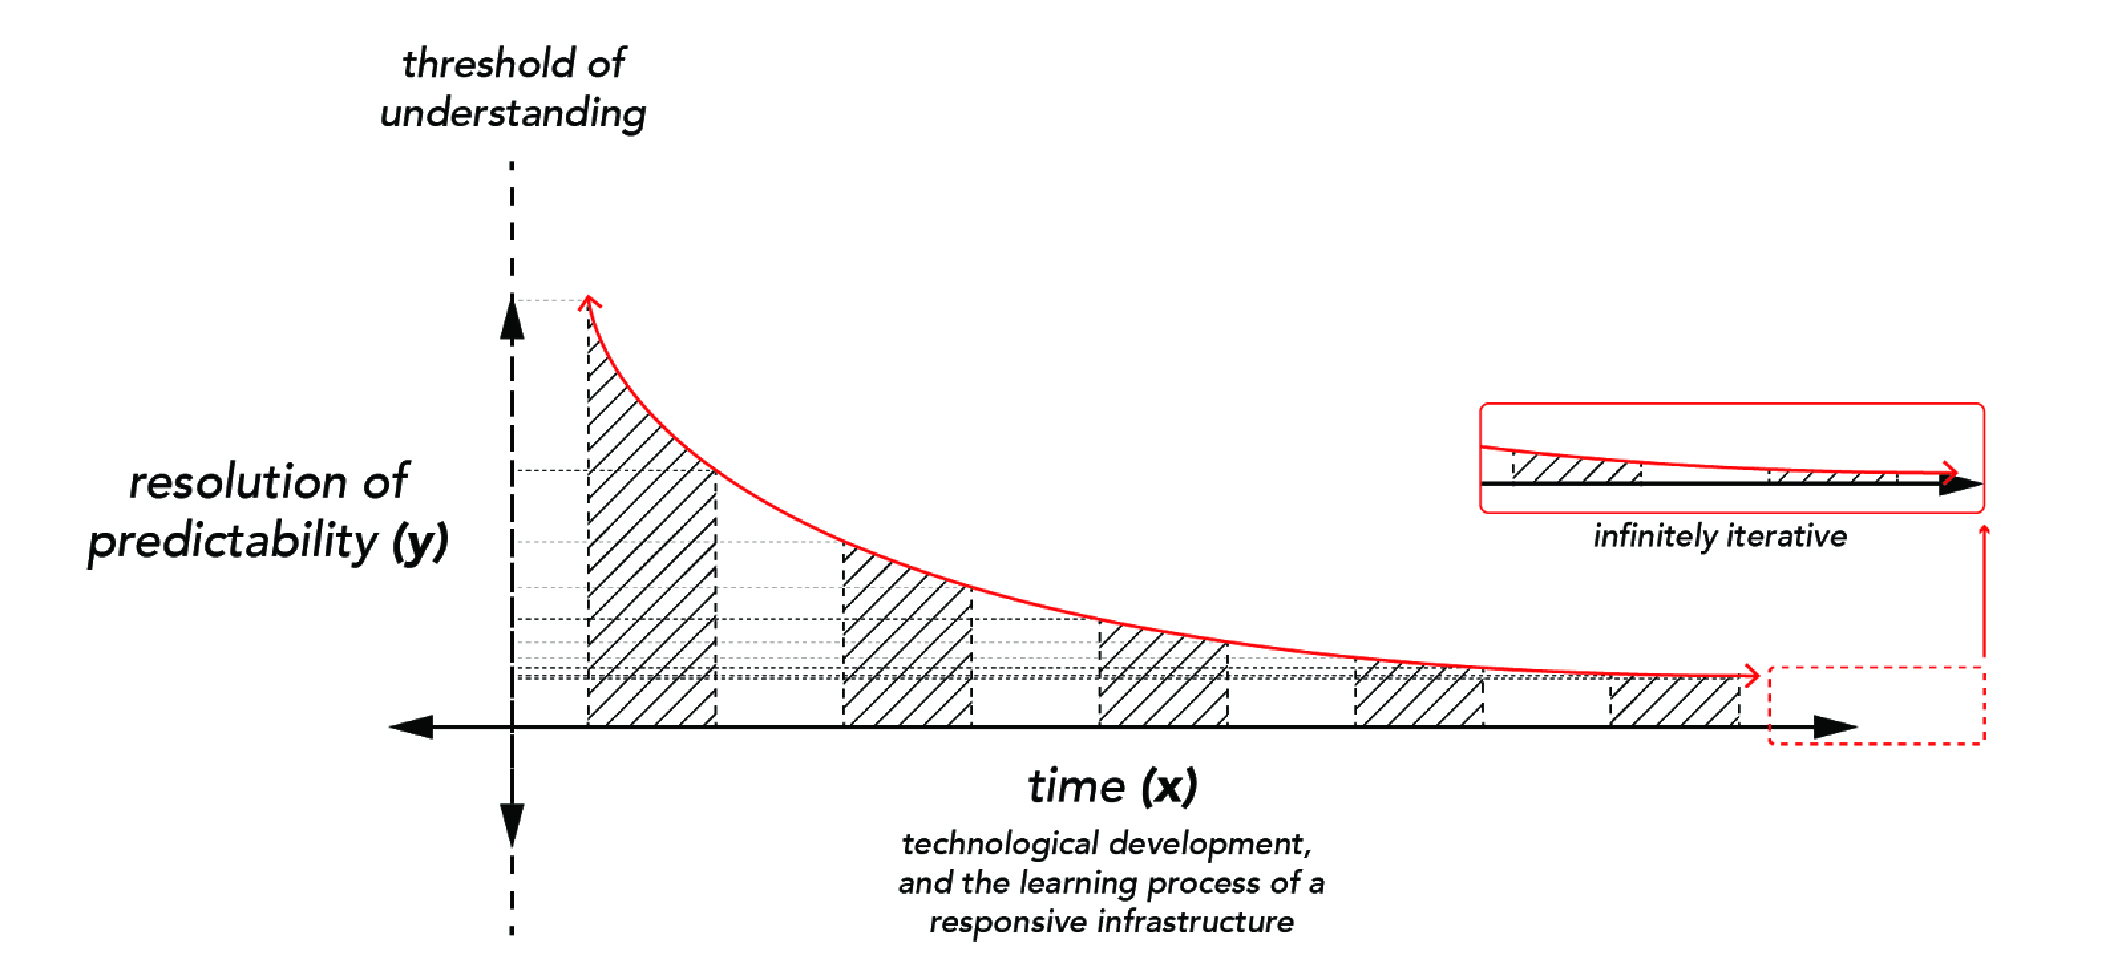 Fig. 3  A conceptual diagram, based upon the idea of an   asymptote  ; showing the resolution of phenomenal predictability in relation to time (the development of technological precision and a responsive infrastructure's understanding of its context.)   Diagram by Leif Estrada.